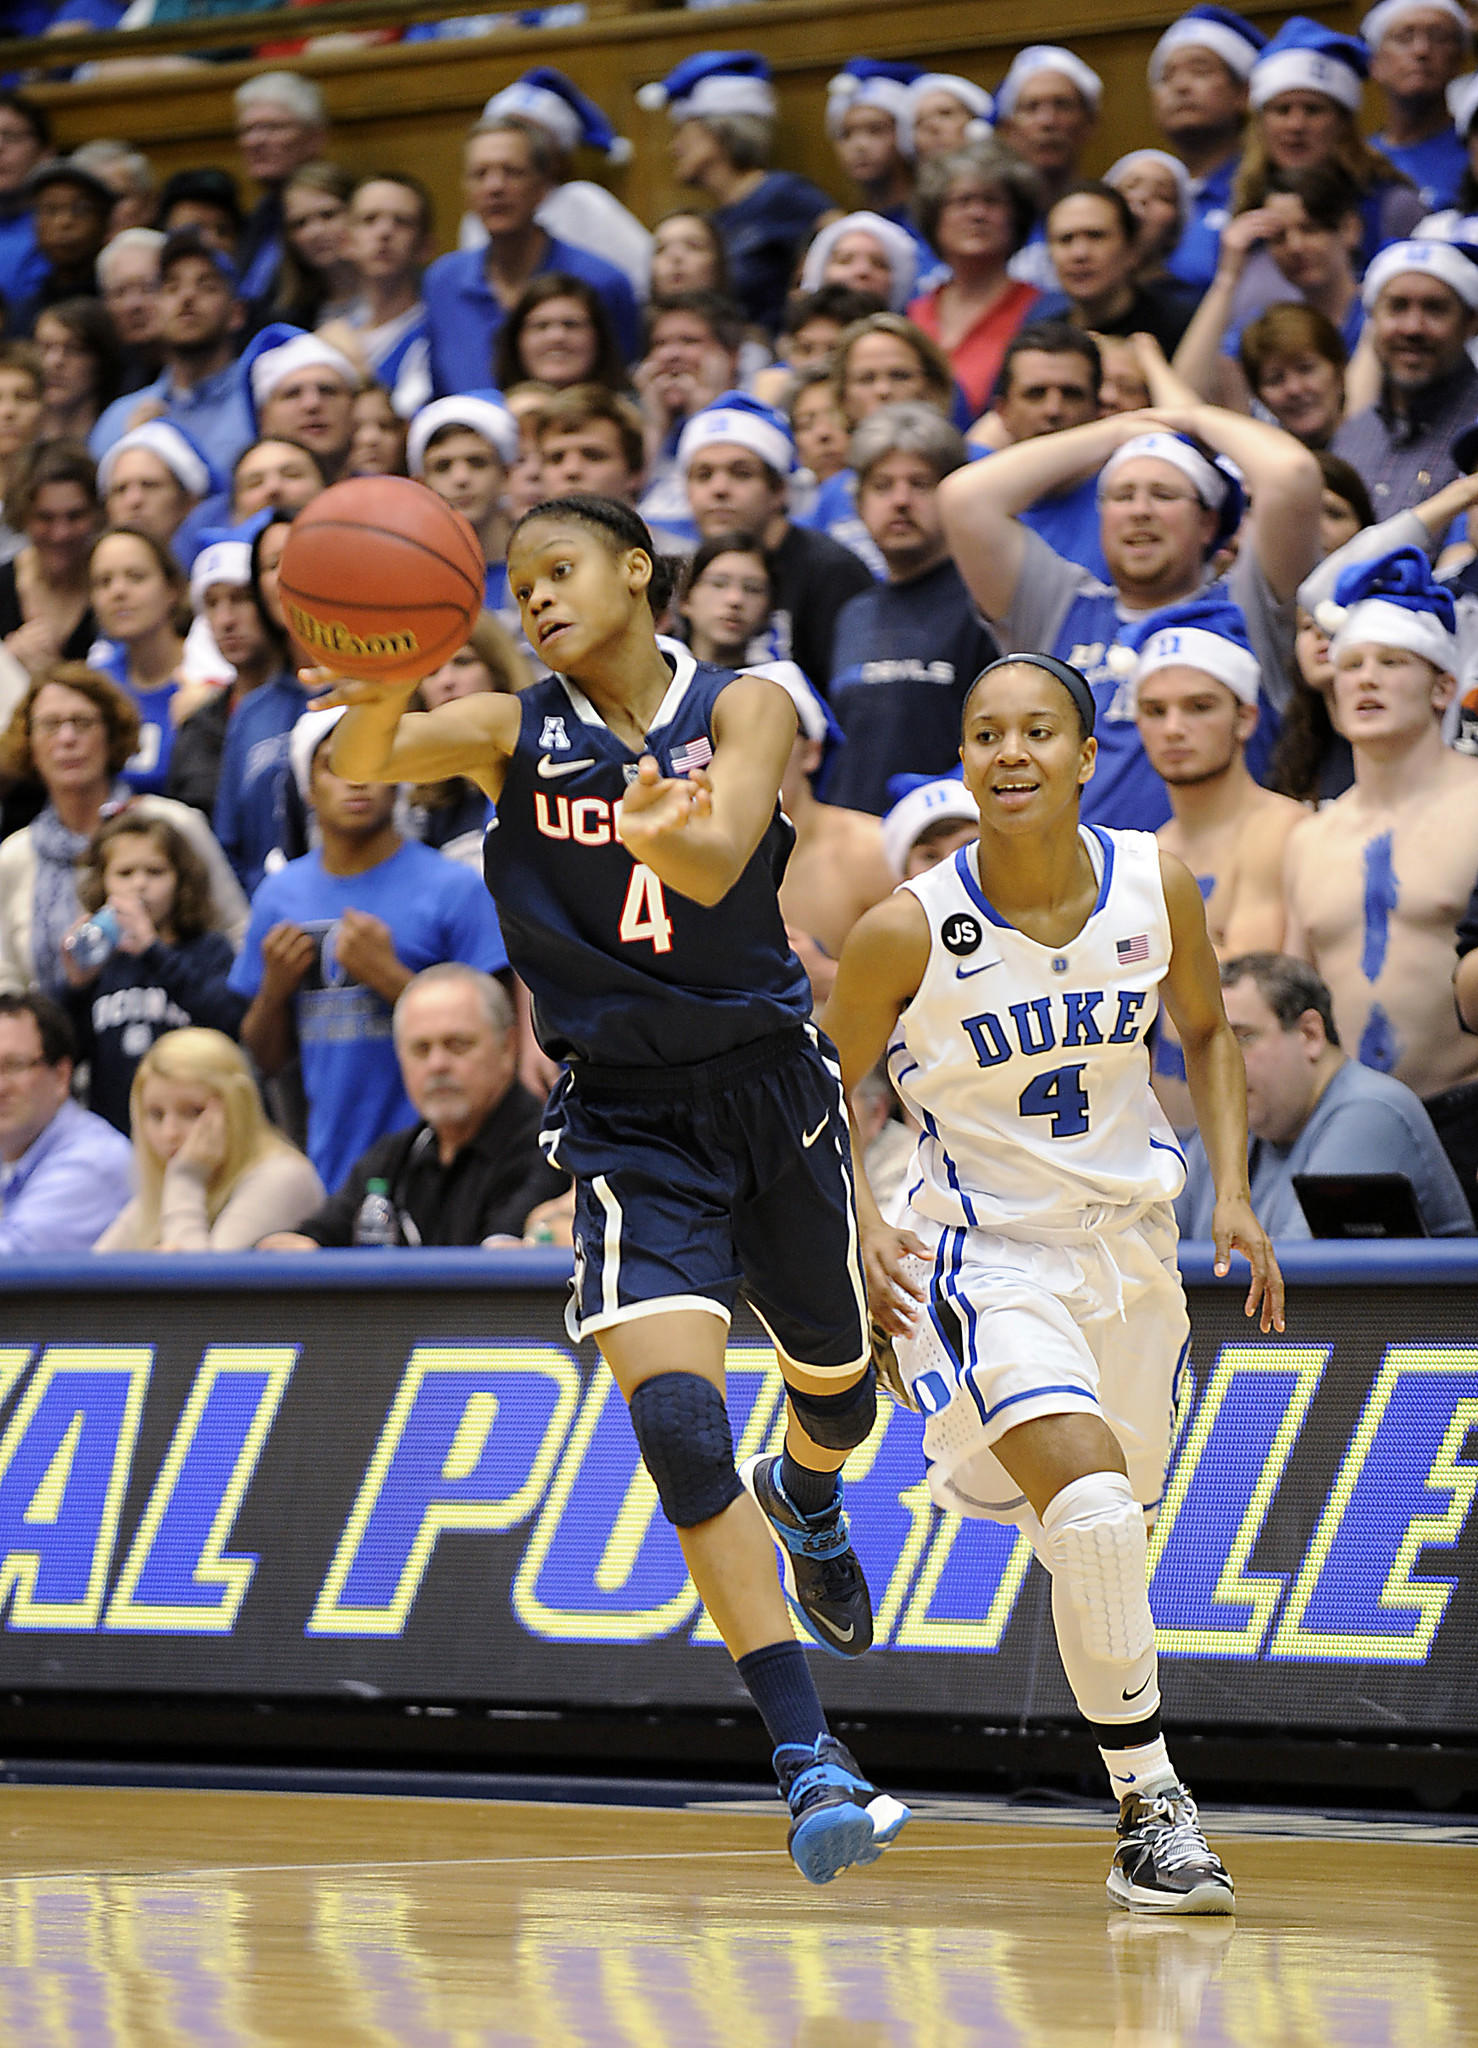 Durham, NC 12/17/13 Connecticut Huskies guard Moriah Jefferson (4) pushes the ball ahead for one of her 7 assists against Chloe Wells (4) and Duke at Cameron Indoor Stadium in Durham, NC, Tuesday evening. Jefferson also scored 9 points with 3 steals to help the Huskies to an 83-61 victory. After the game head coach Geno Aureimma said he felt it was Jefferson's best game so far at UConn. Photo by JOHN WOIKE | woike@courant.com hc-uconn-women-duke-1218